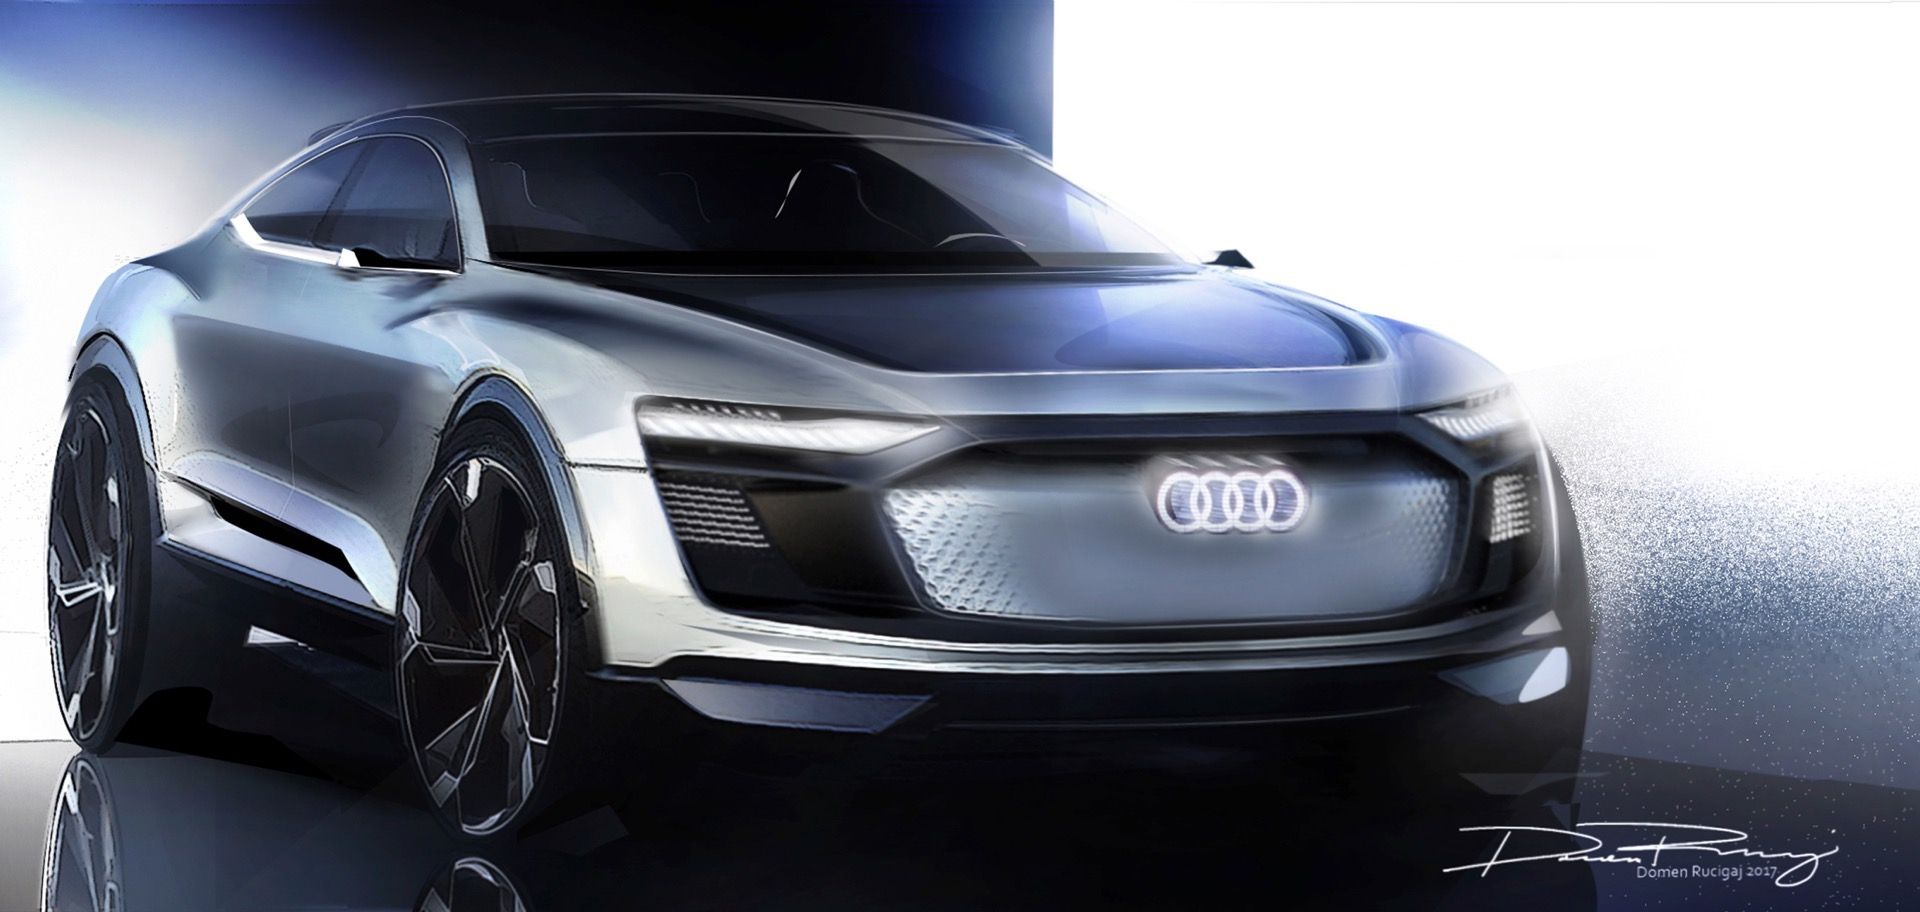 Audi s shanghai bound concept finally has a name e tron sportback concept new teasers come to reveal more of the crossover coupe shape